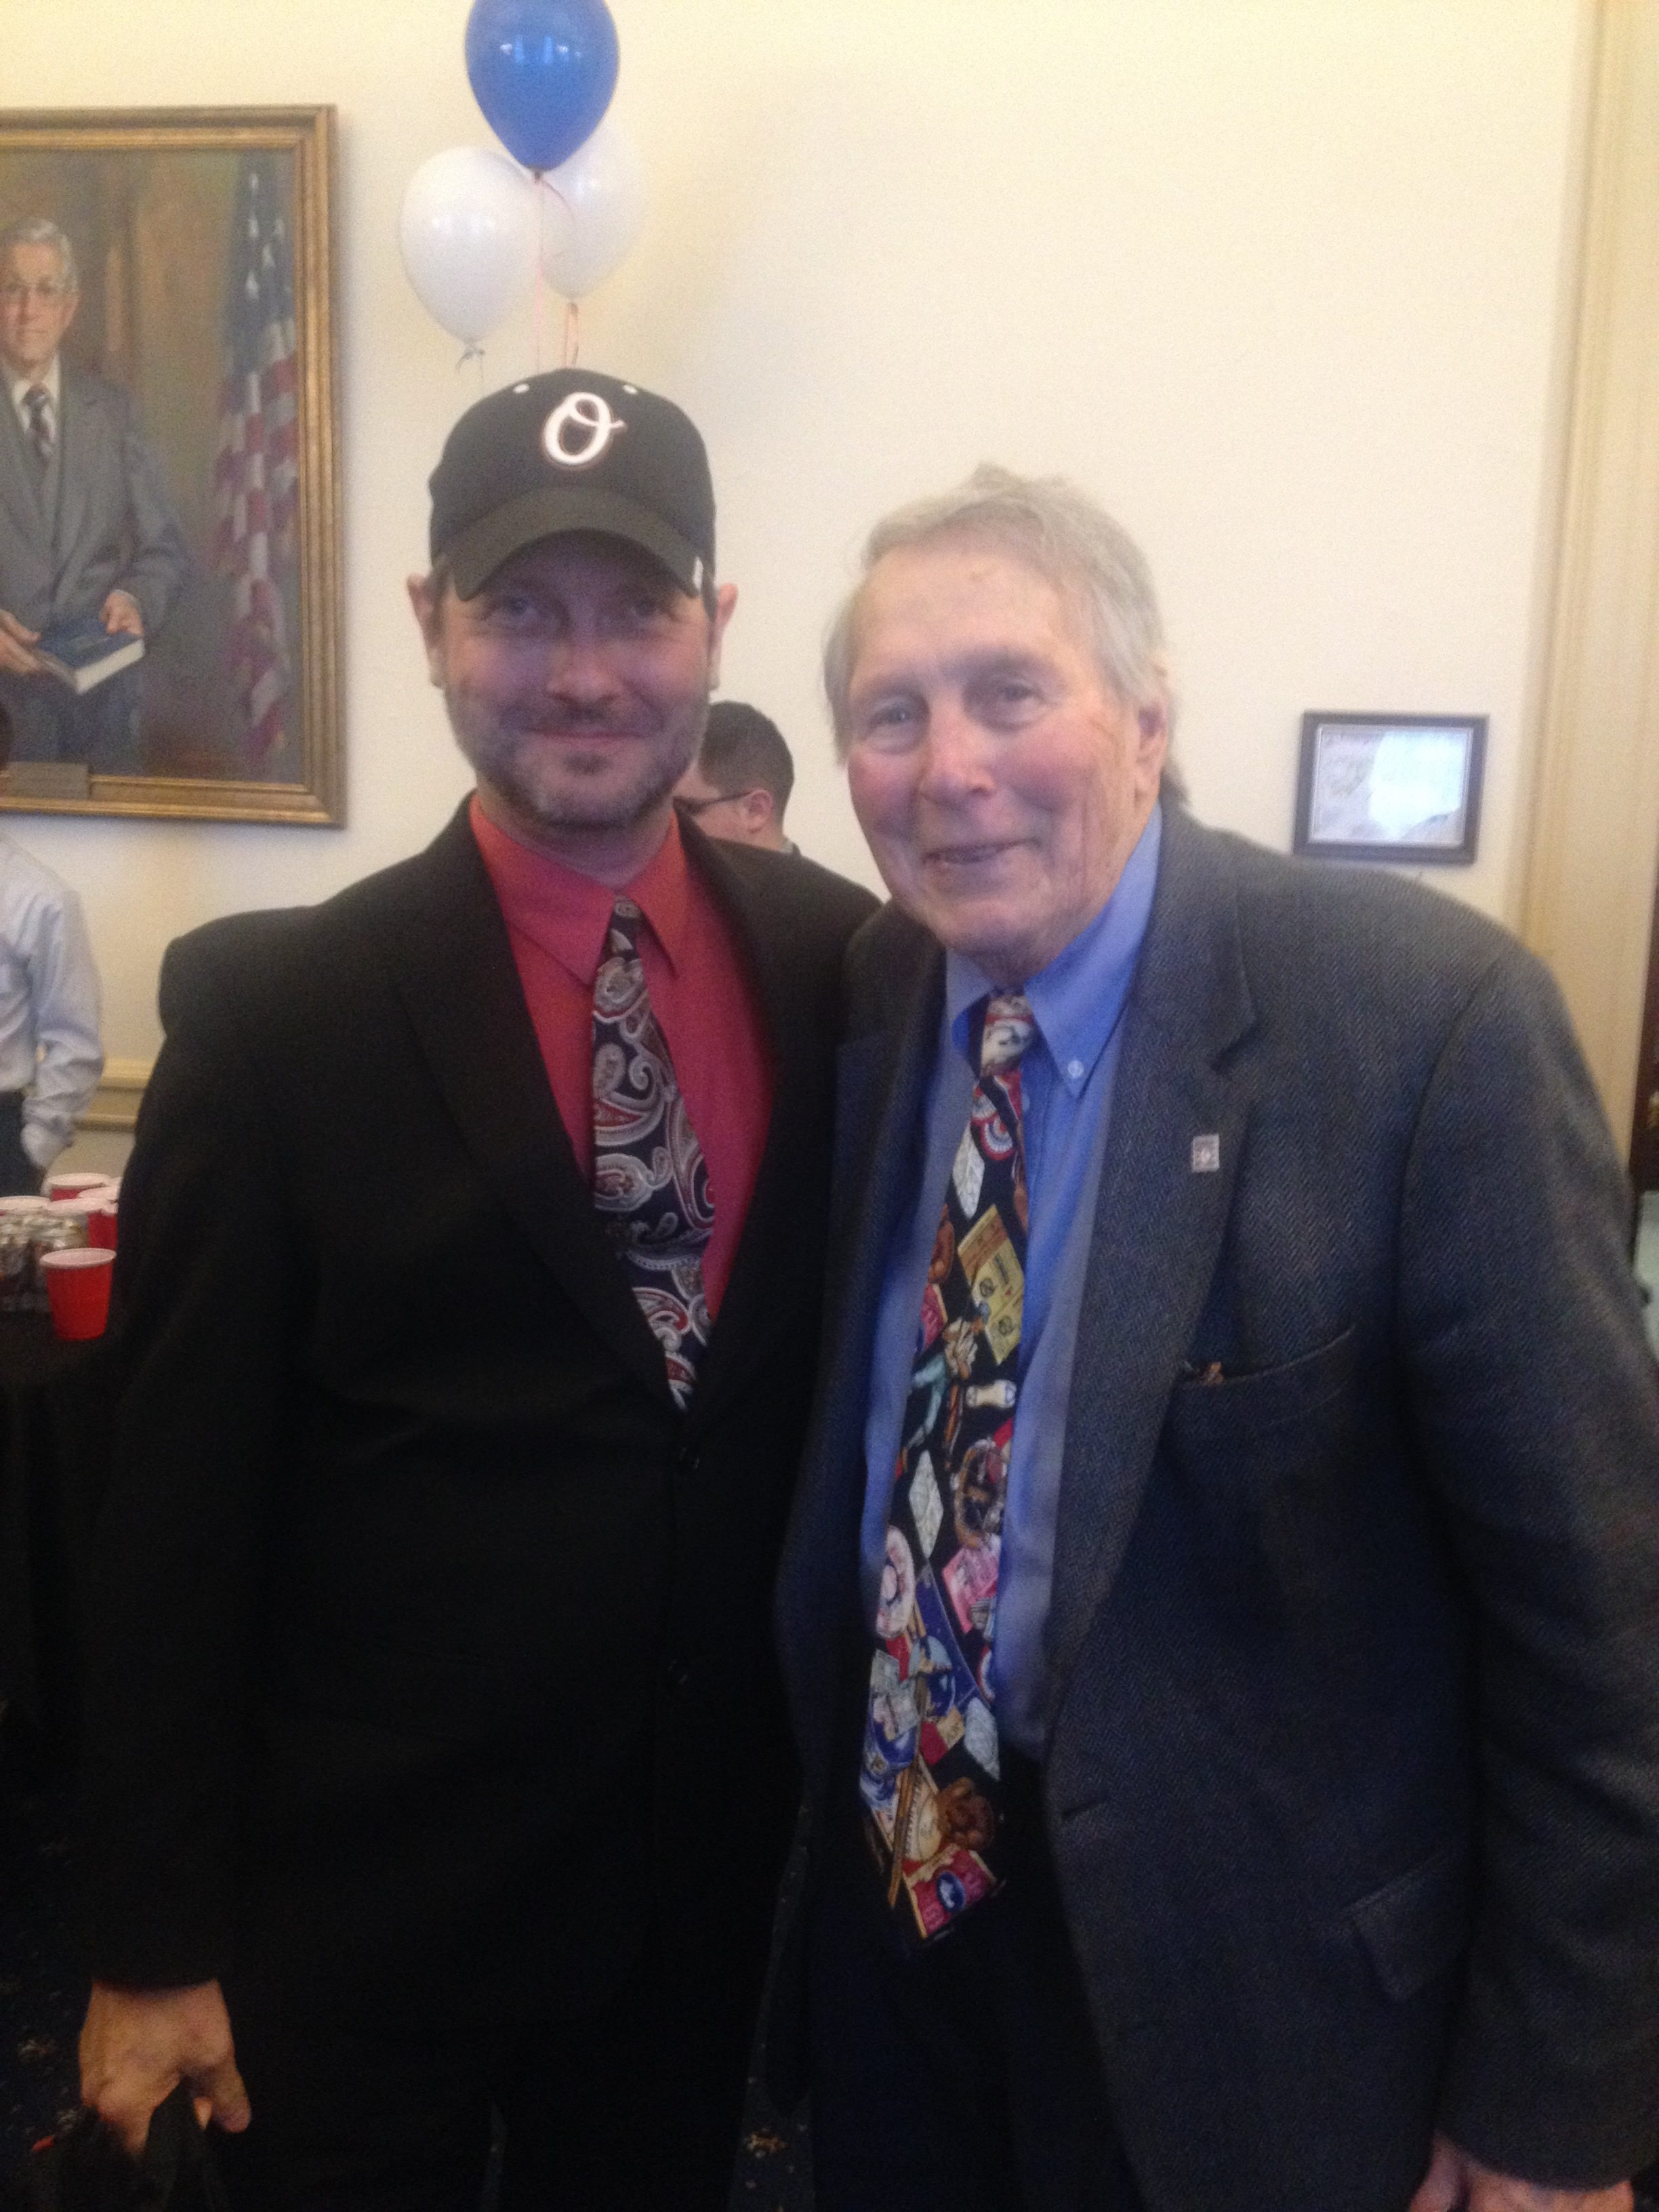 Wadkins with Baltimore Orioles great Brooks Robinson at a Major League Baseball reception on the Hill.